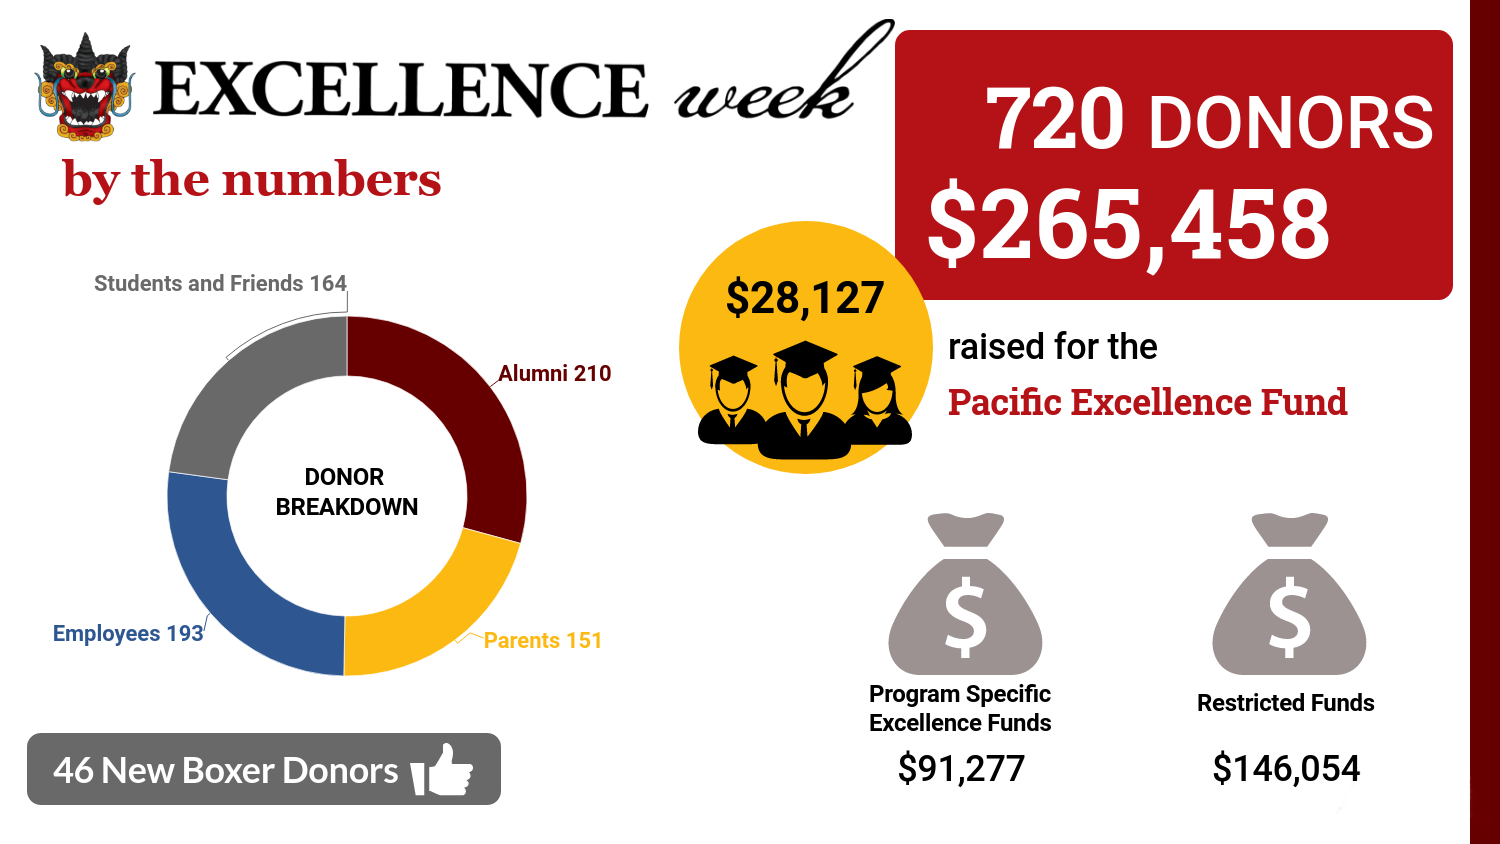 Boxer Excellence Week gift and donor totals detailed in written paragraphs above